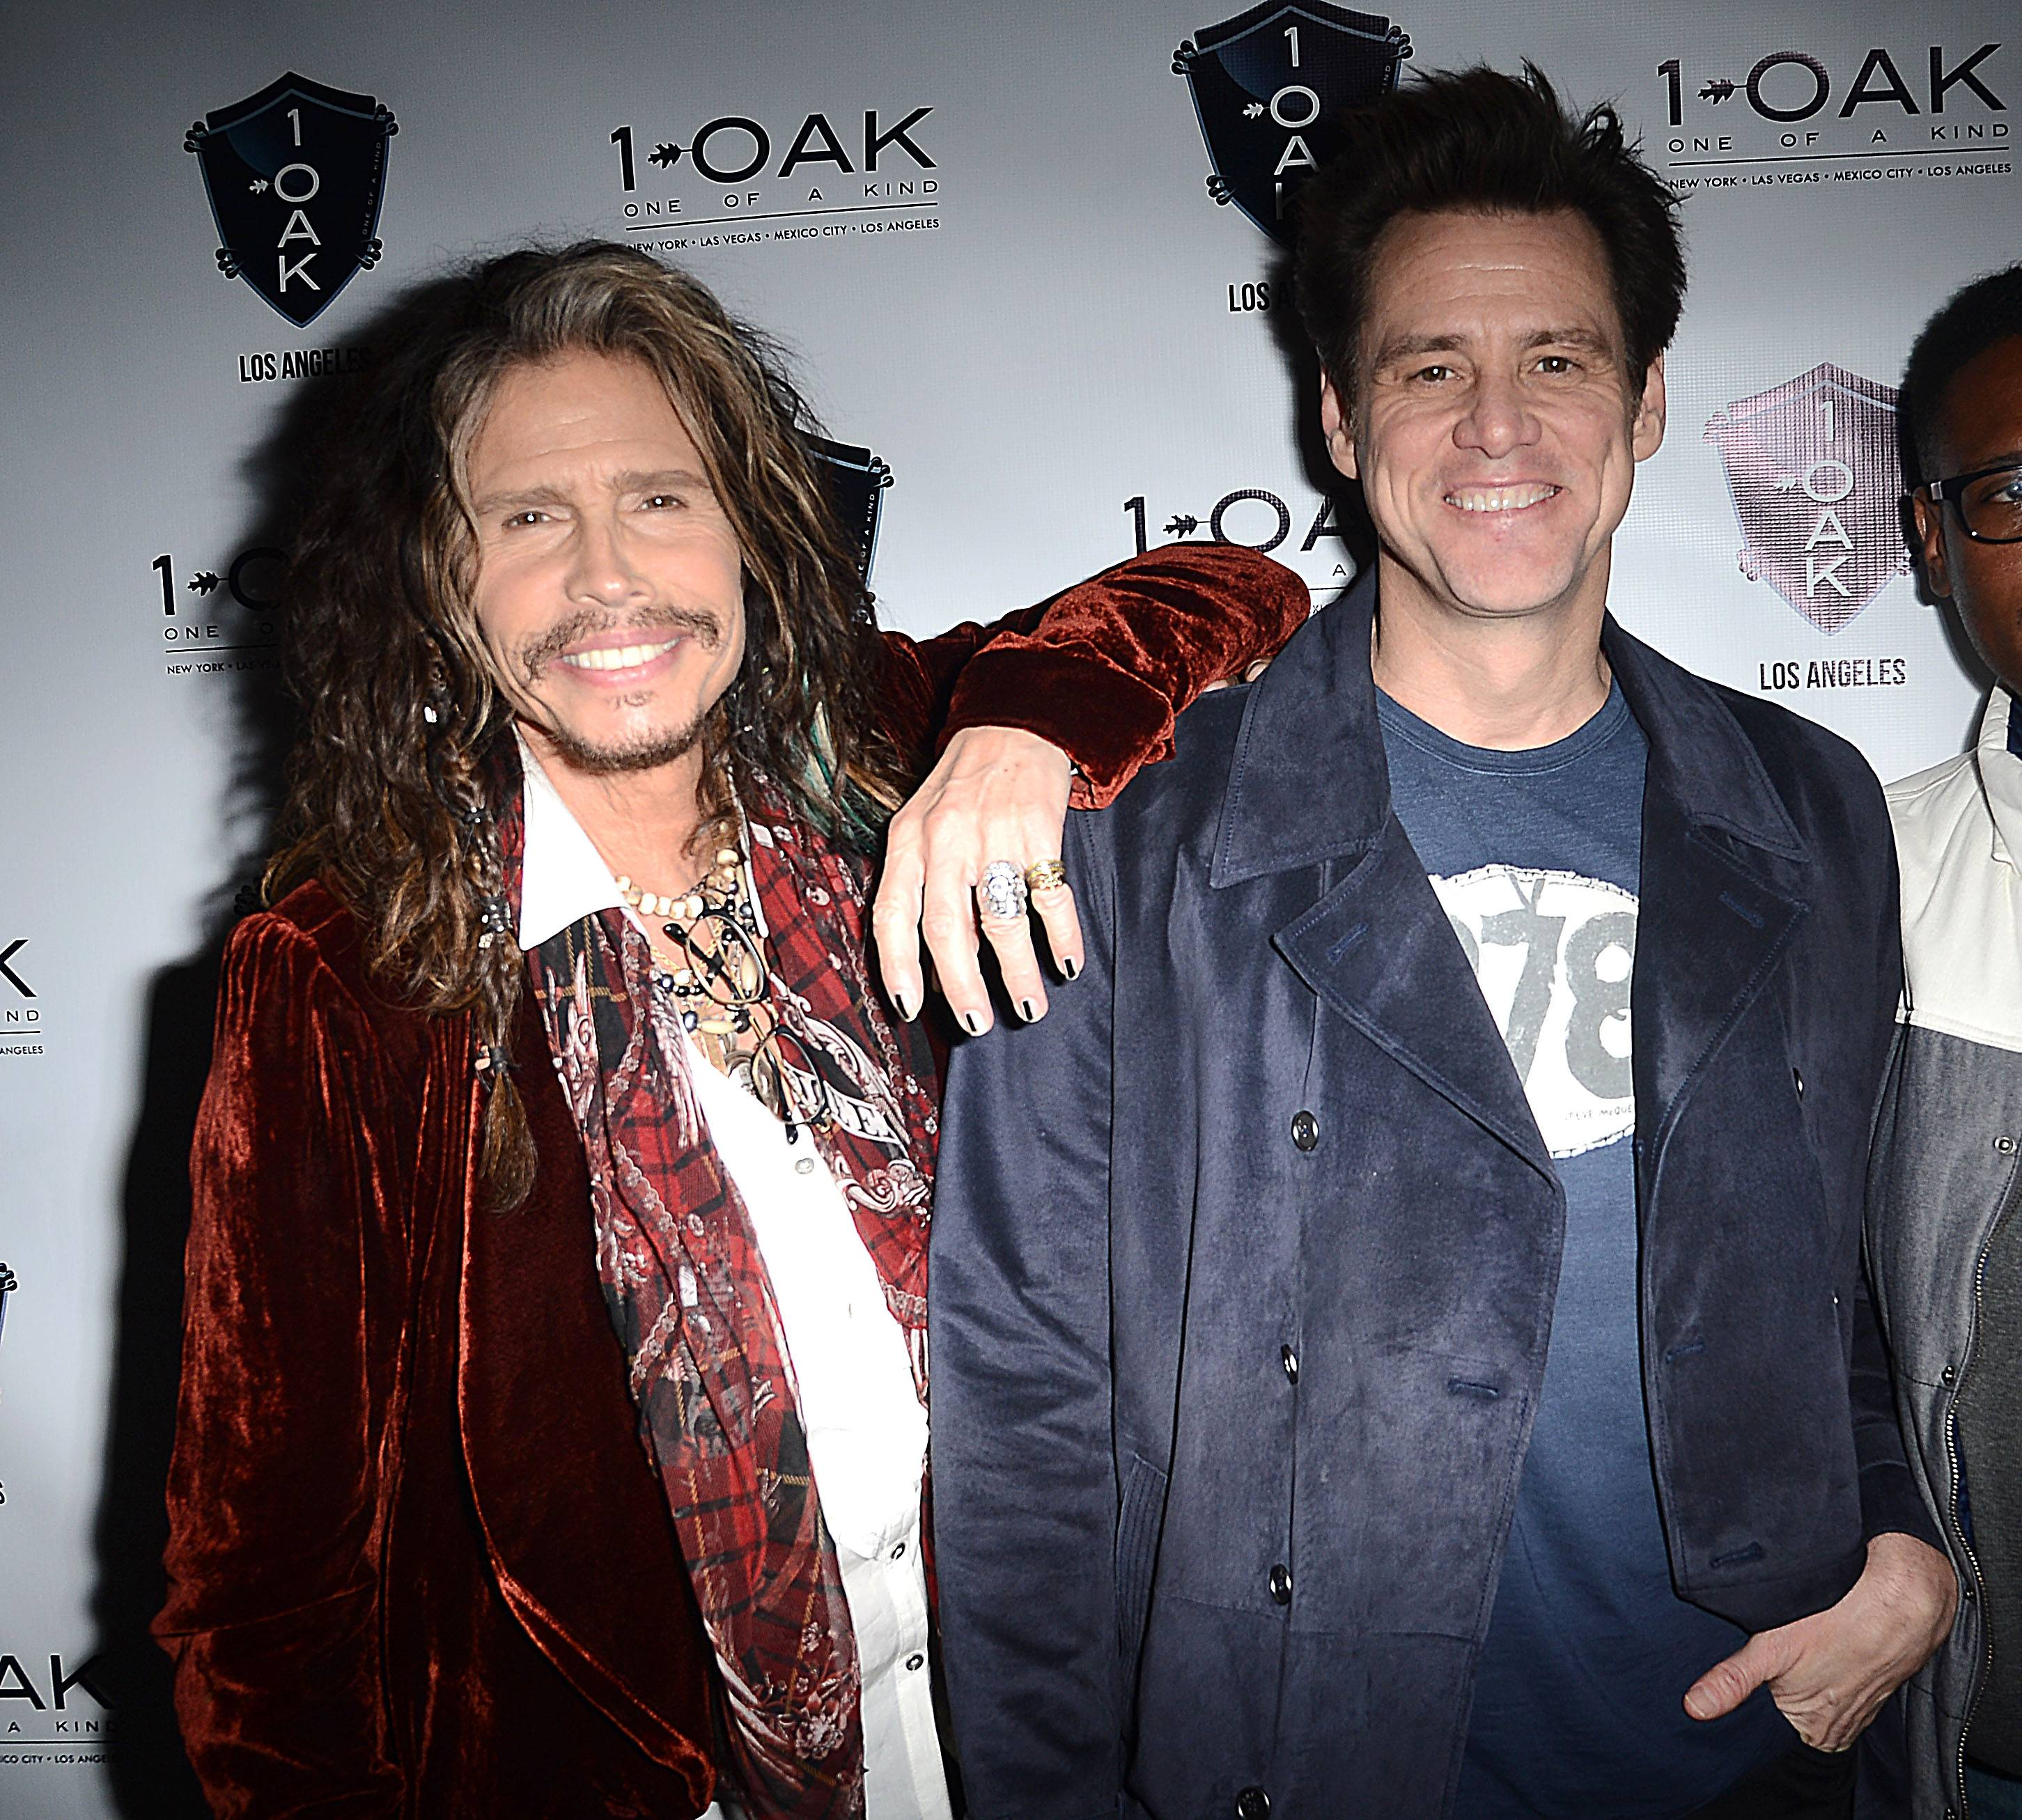 Jim Carrey and Steven Tyler. 1 OAK LA. 1.23